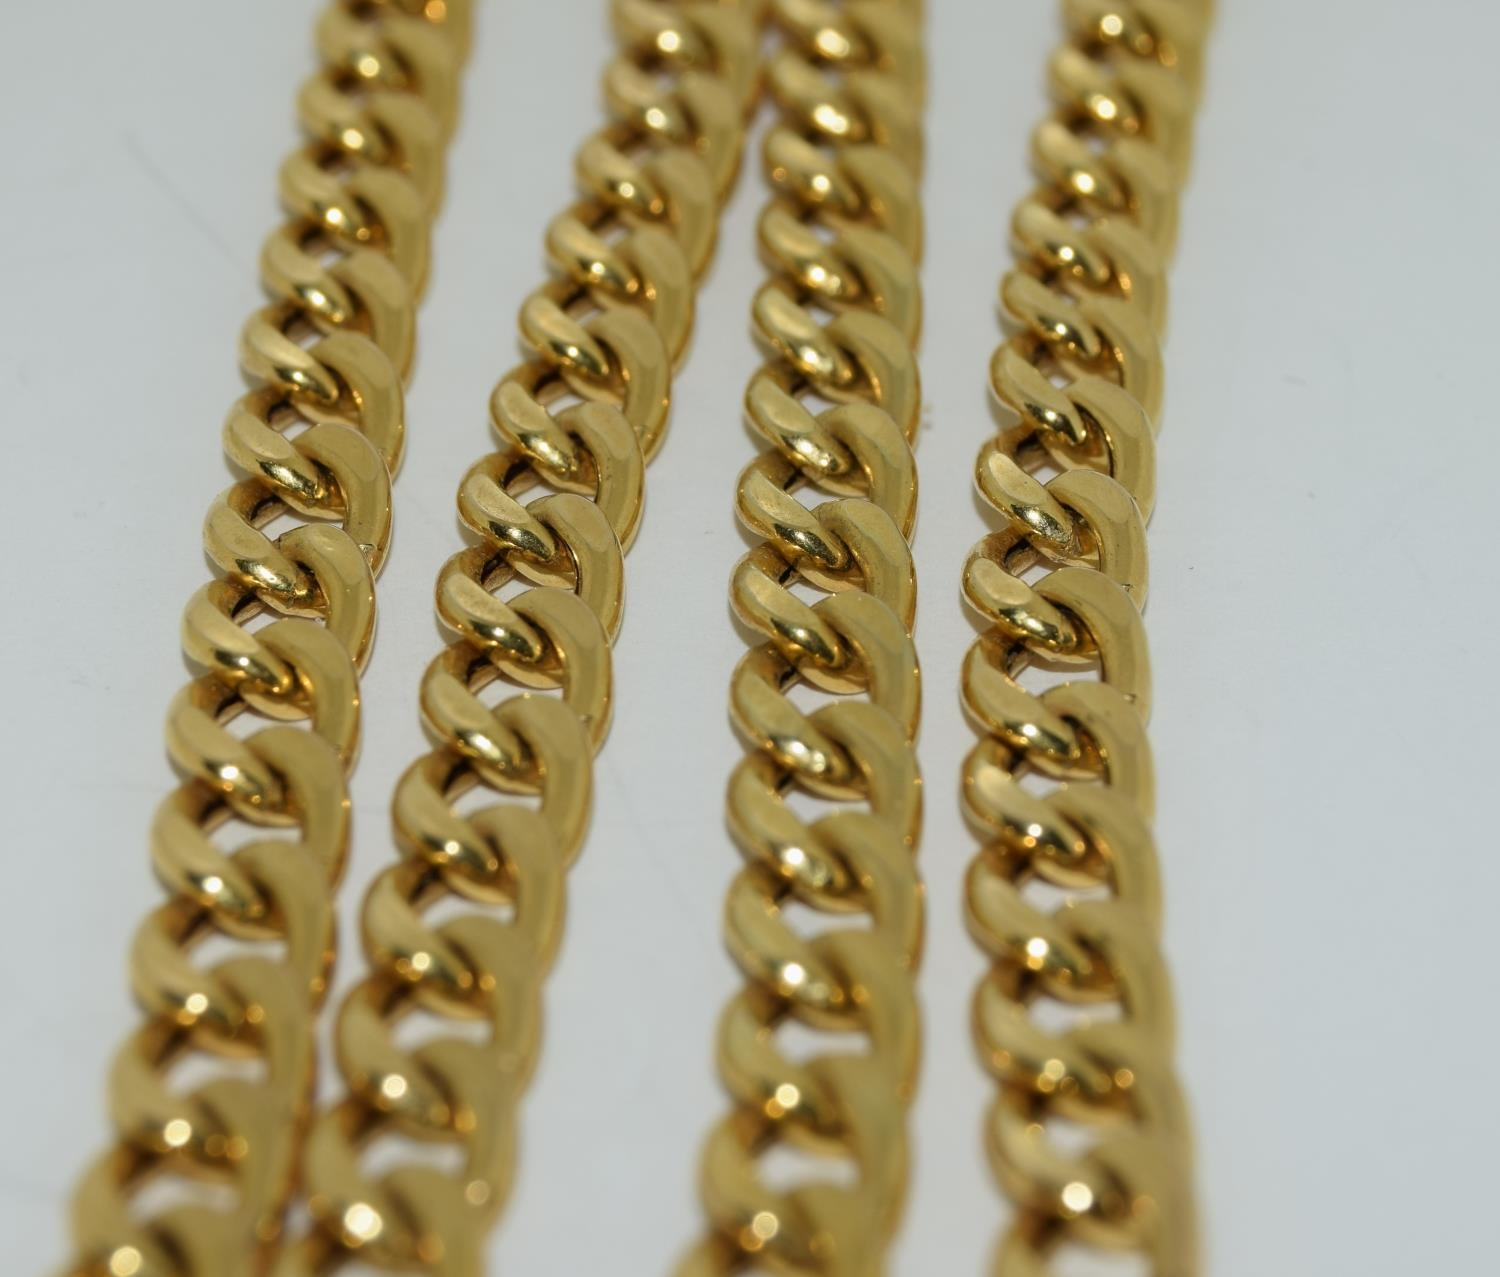 9ct gold flat link necklace 50cm long 11.5gm - Image 4 of 4